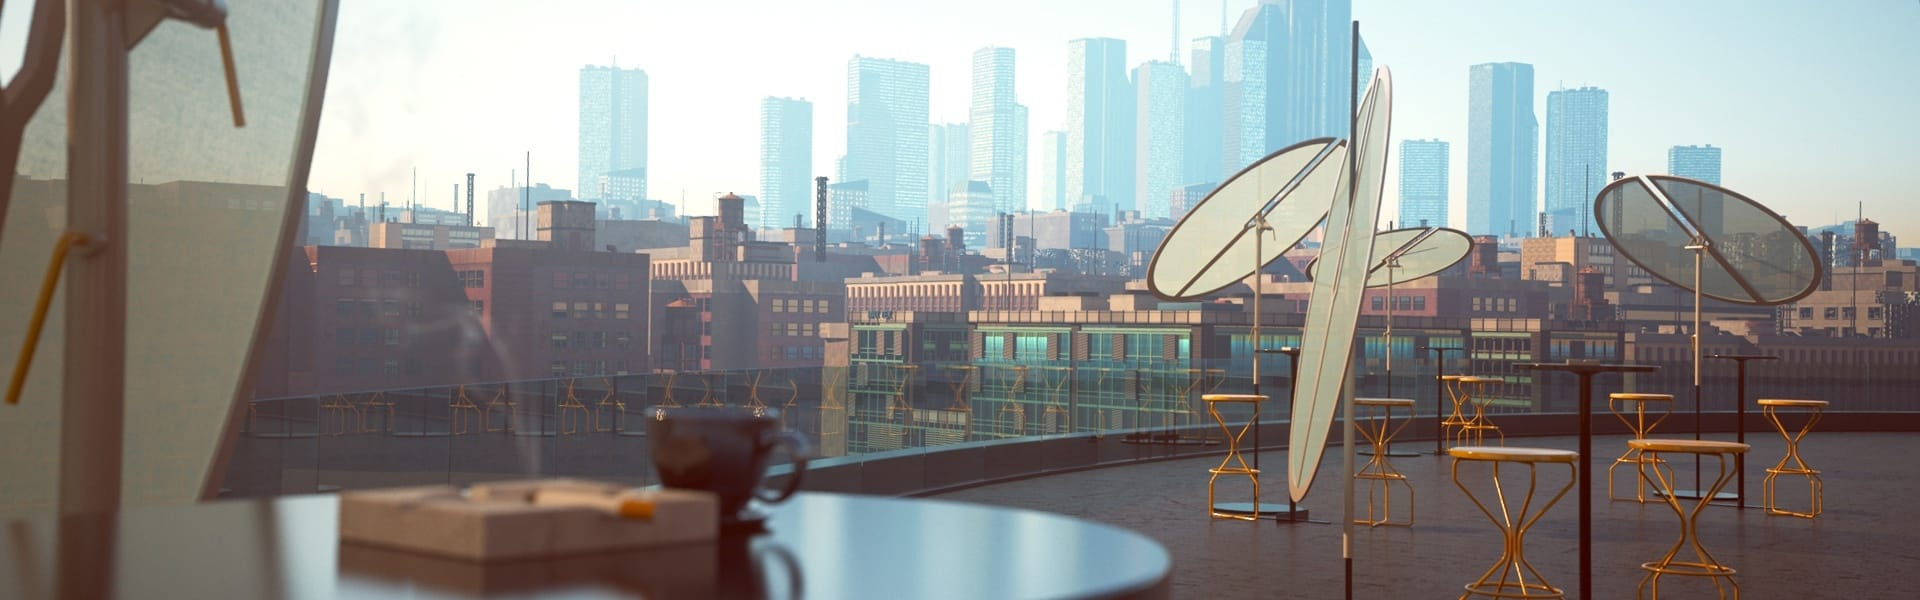 Rooftop City Landscape V-Ray for 3ds Max